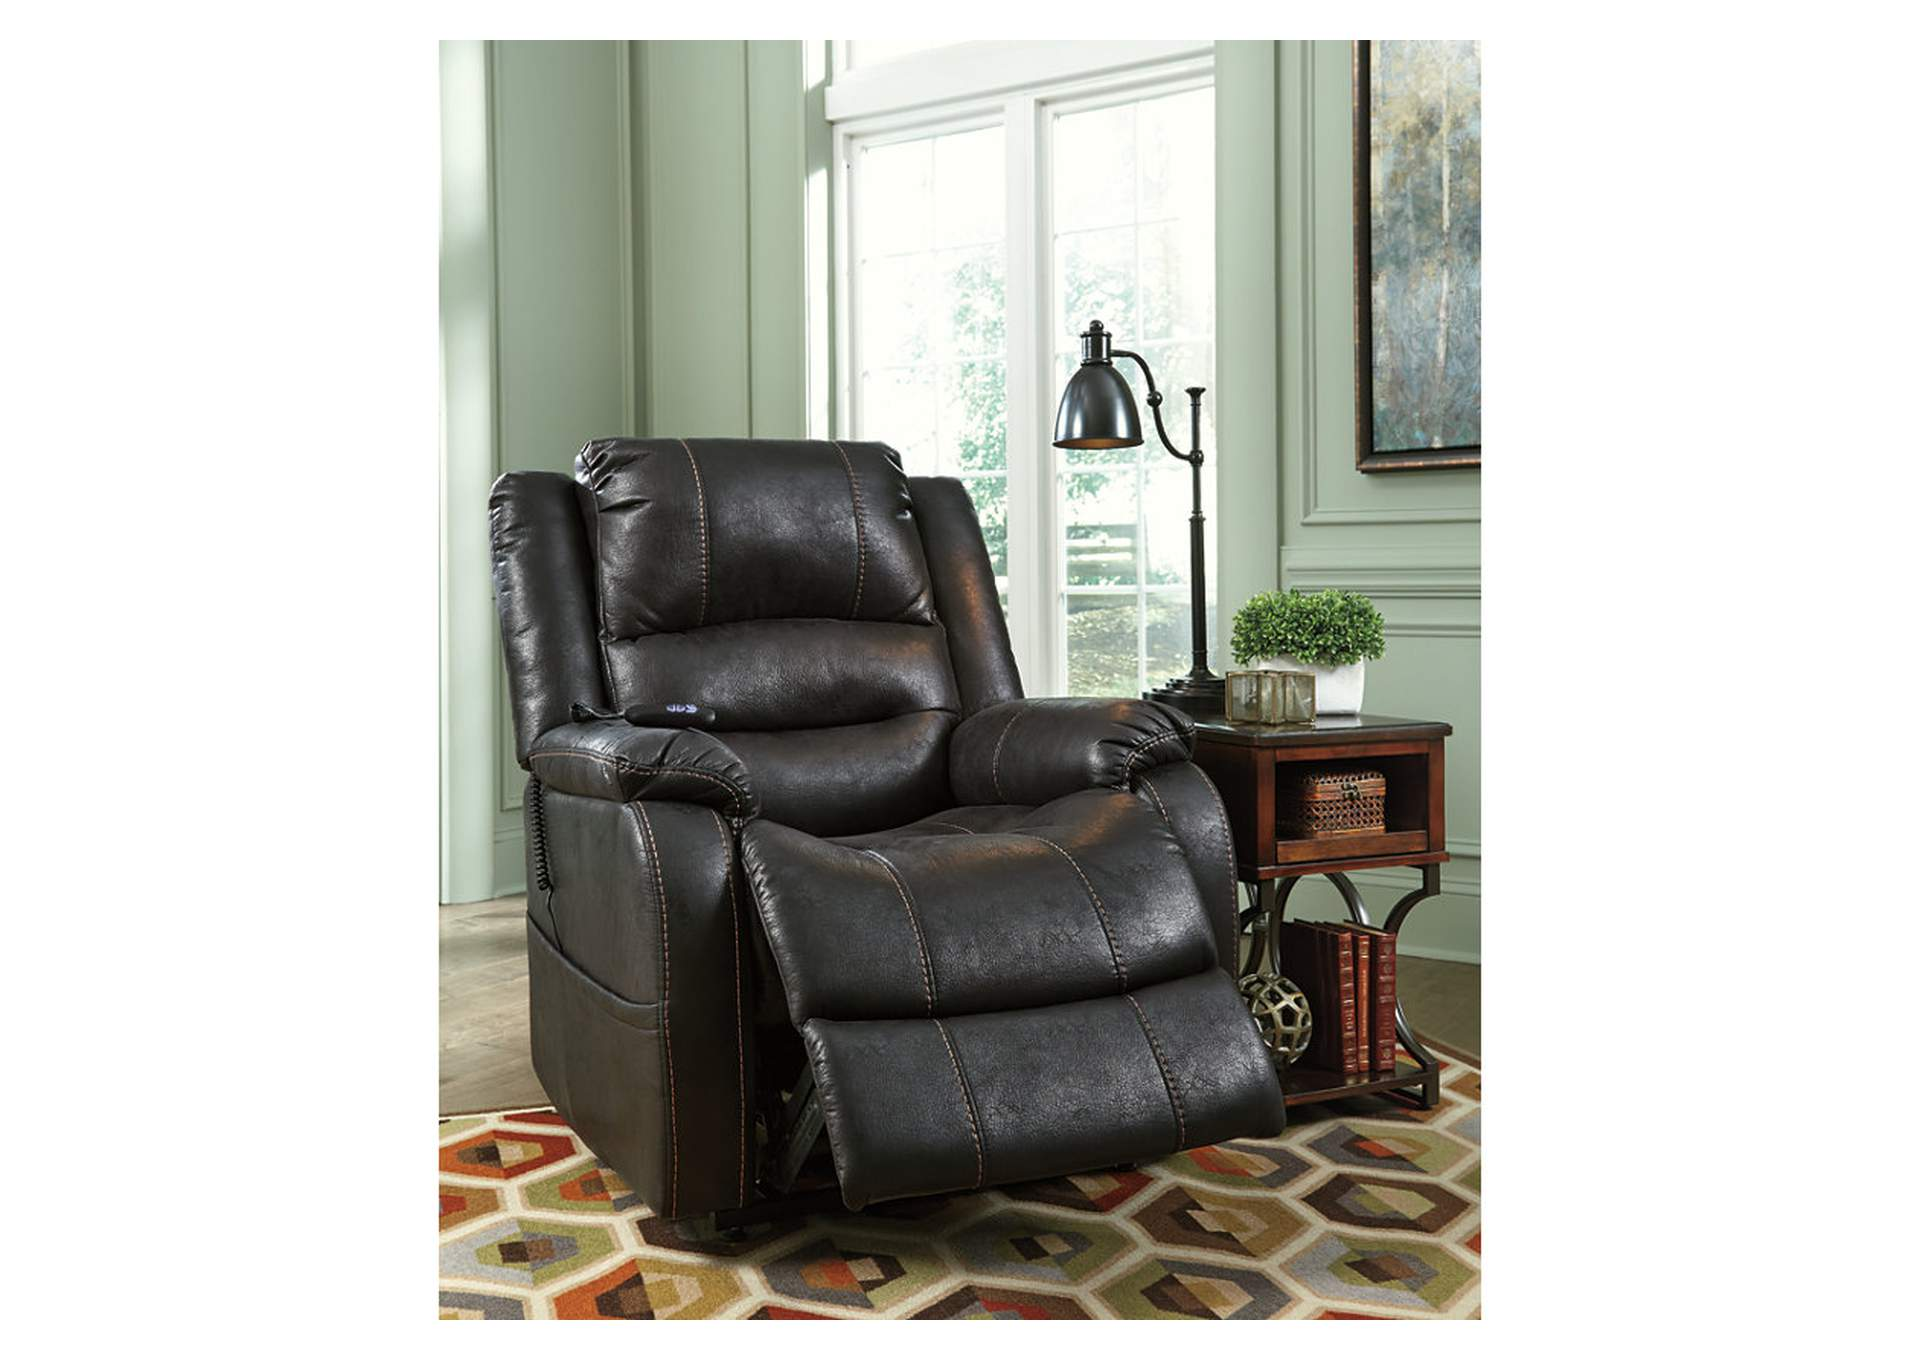 Yandel Black Power Lift Recliner,ABF Signature Design by Ashley